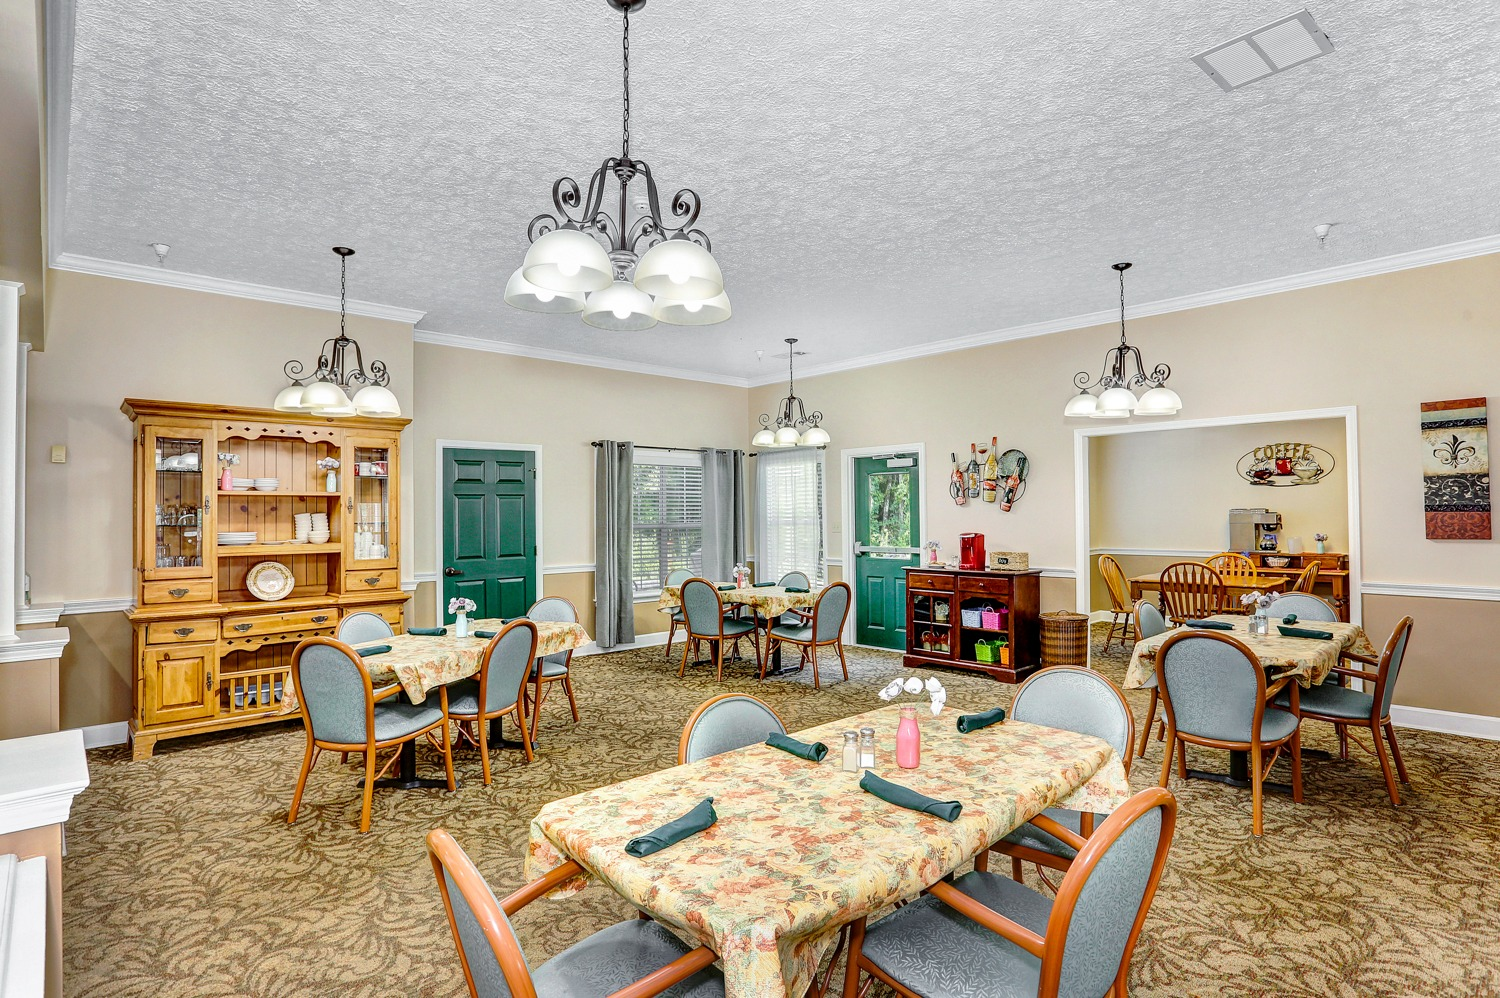 Country Cottage Decatur - Dining Room